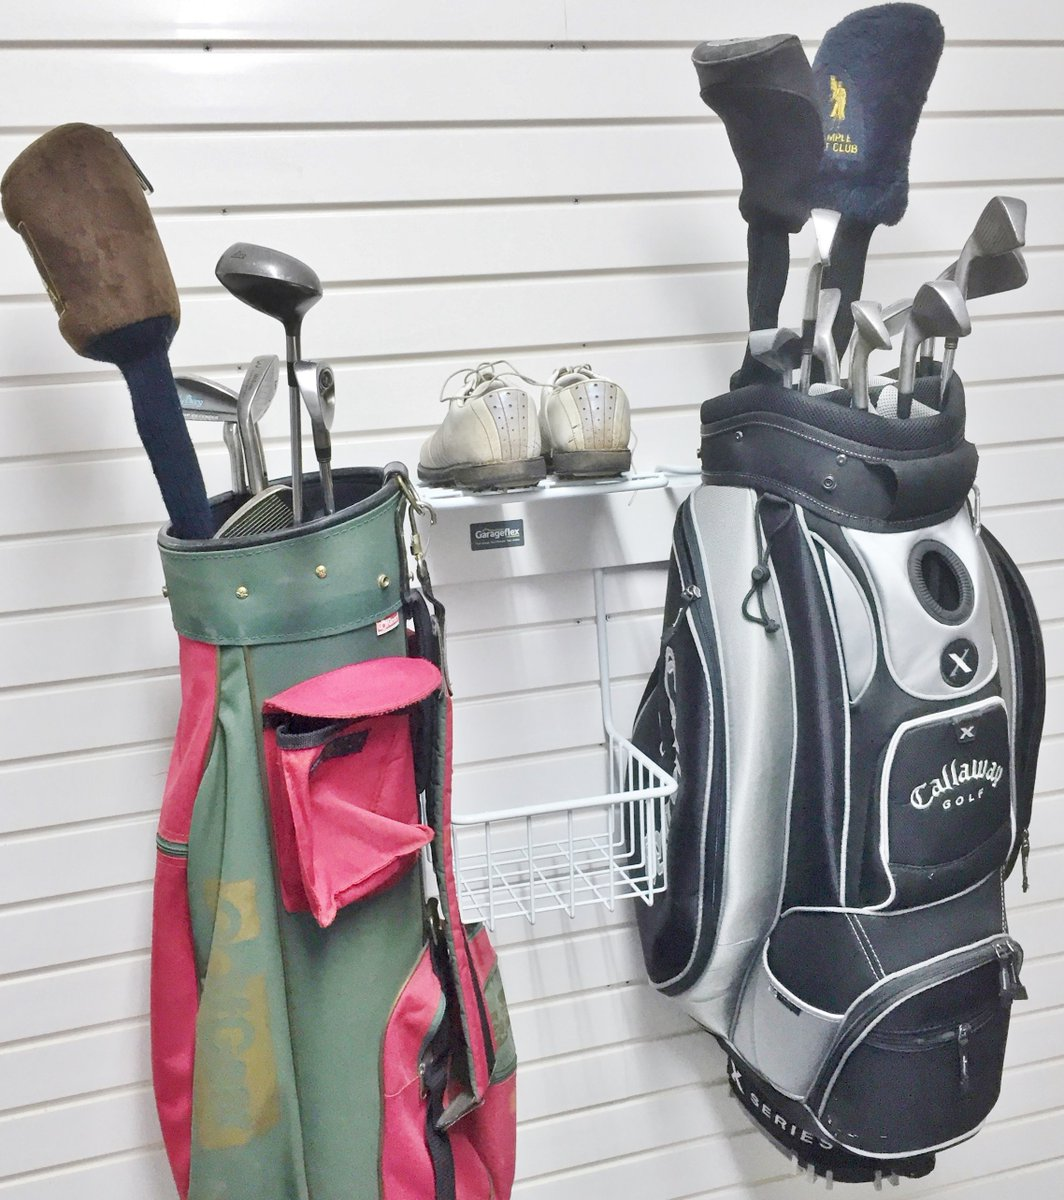 Garageflex On Twitter Perhaps You Are Already Imaginging Your Next Golf Holiday But Where Do You Store Them In The Interim Store Them On Your Garage Wall Of Course Https T Co Rpt5ybjkct Garageflex Golfstorage